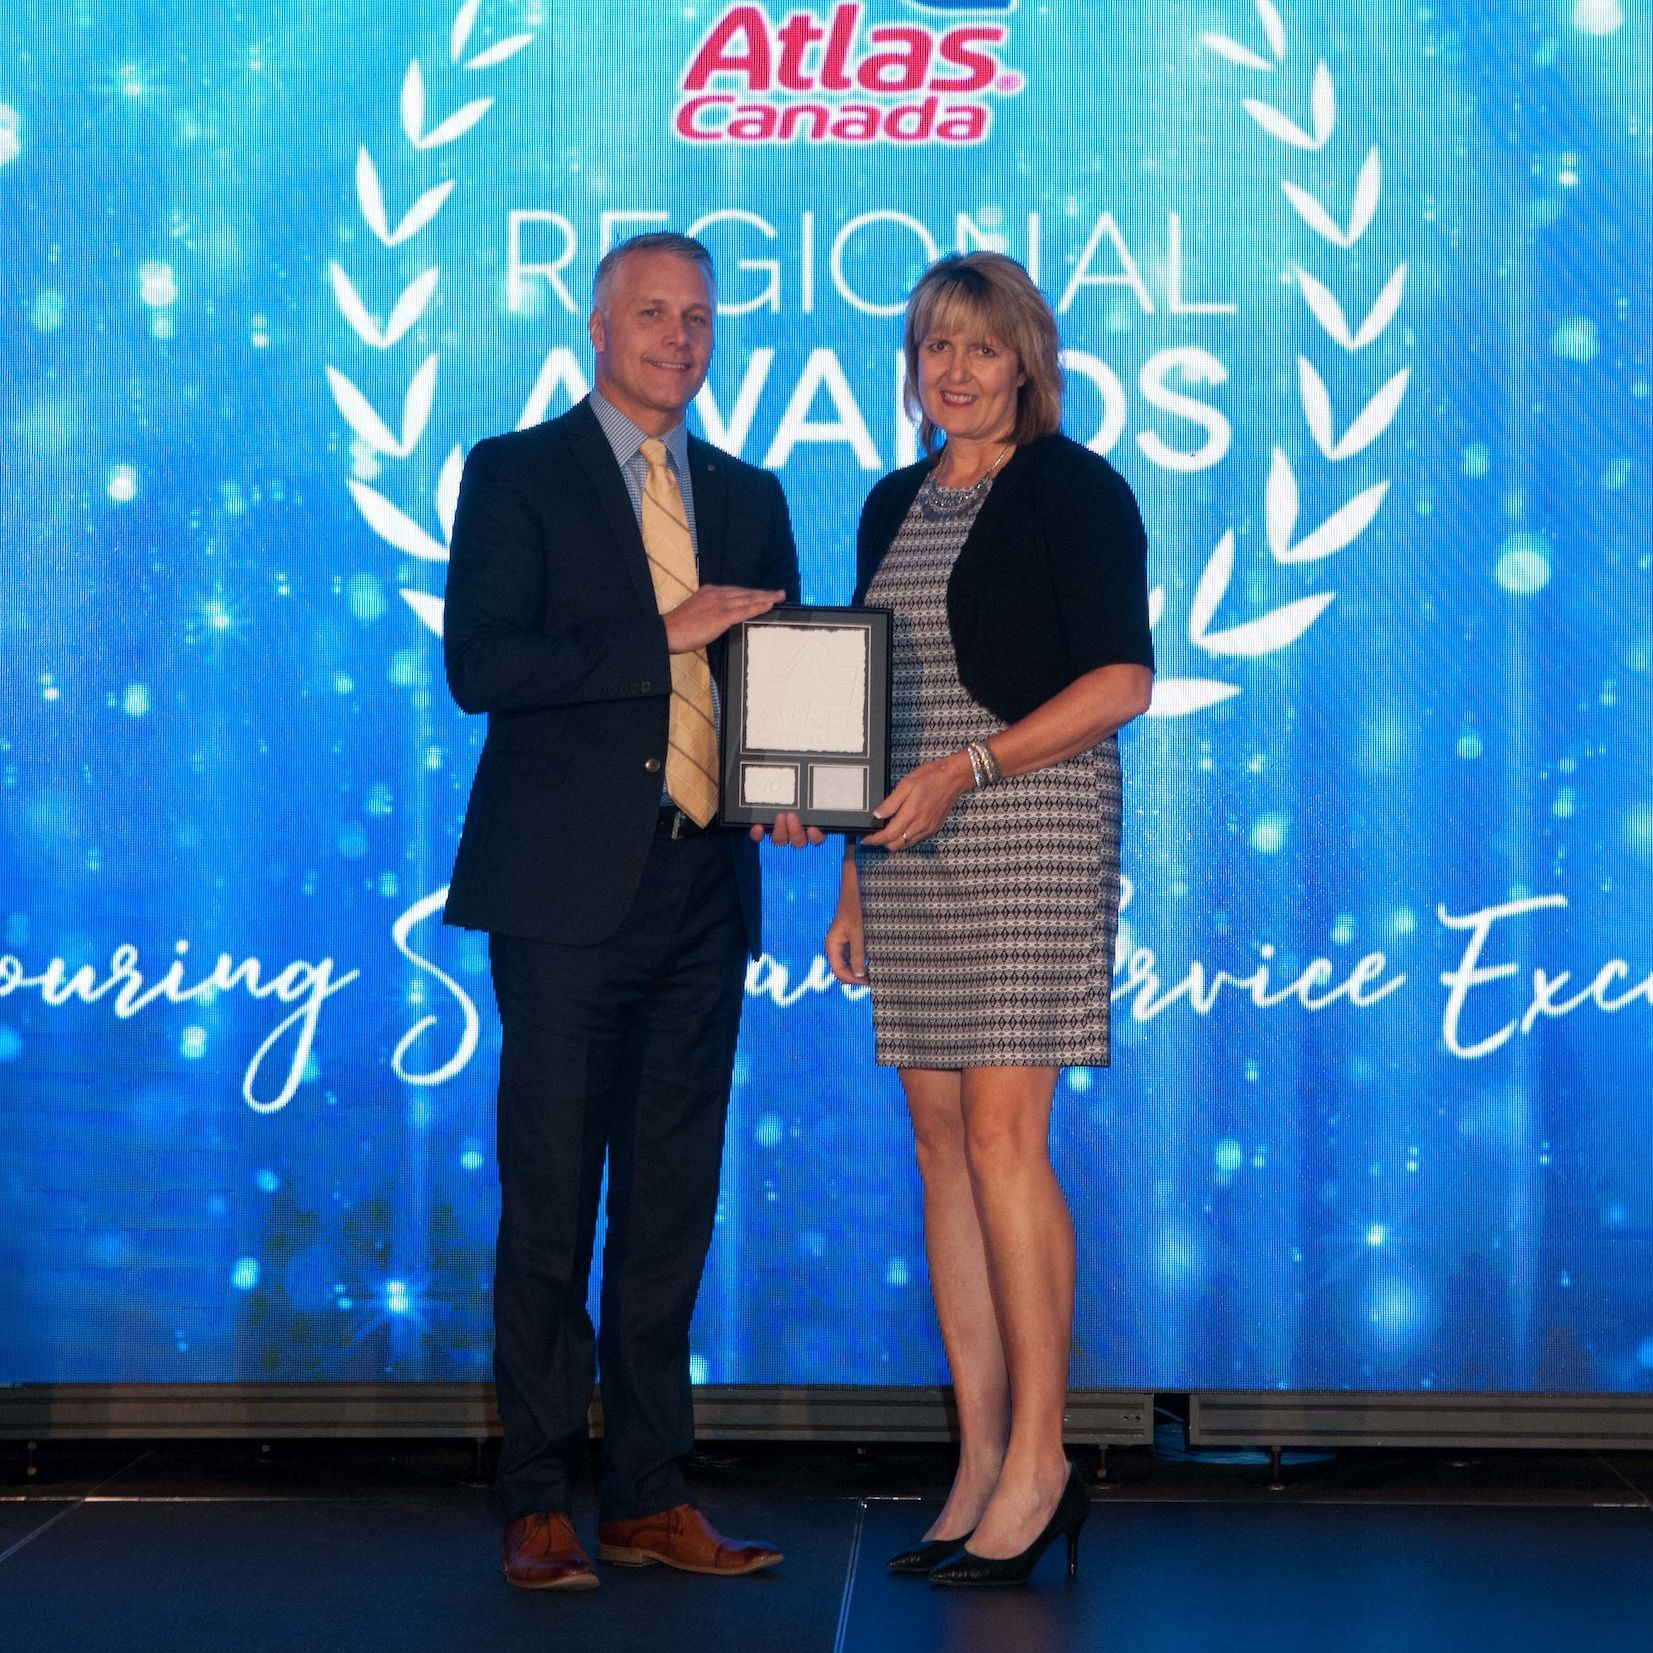 Atlas Van Lines Awards 2018